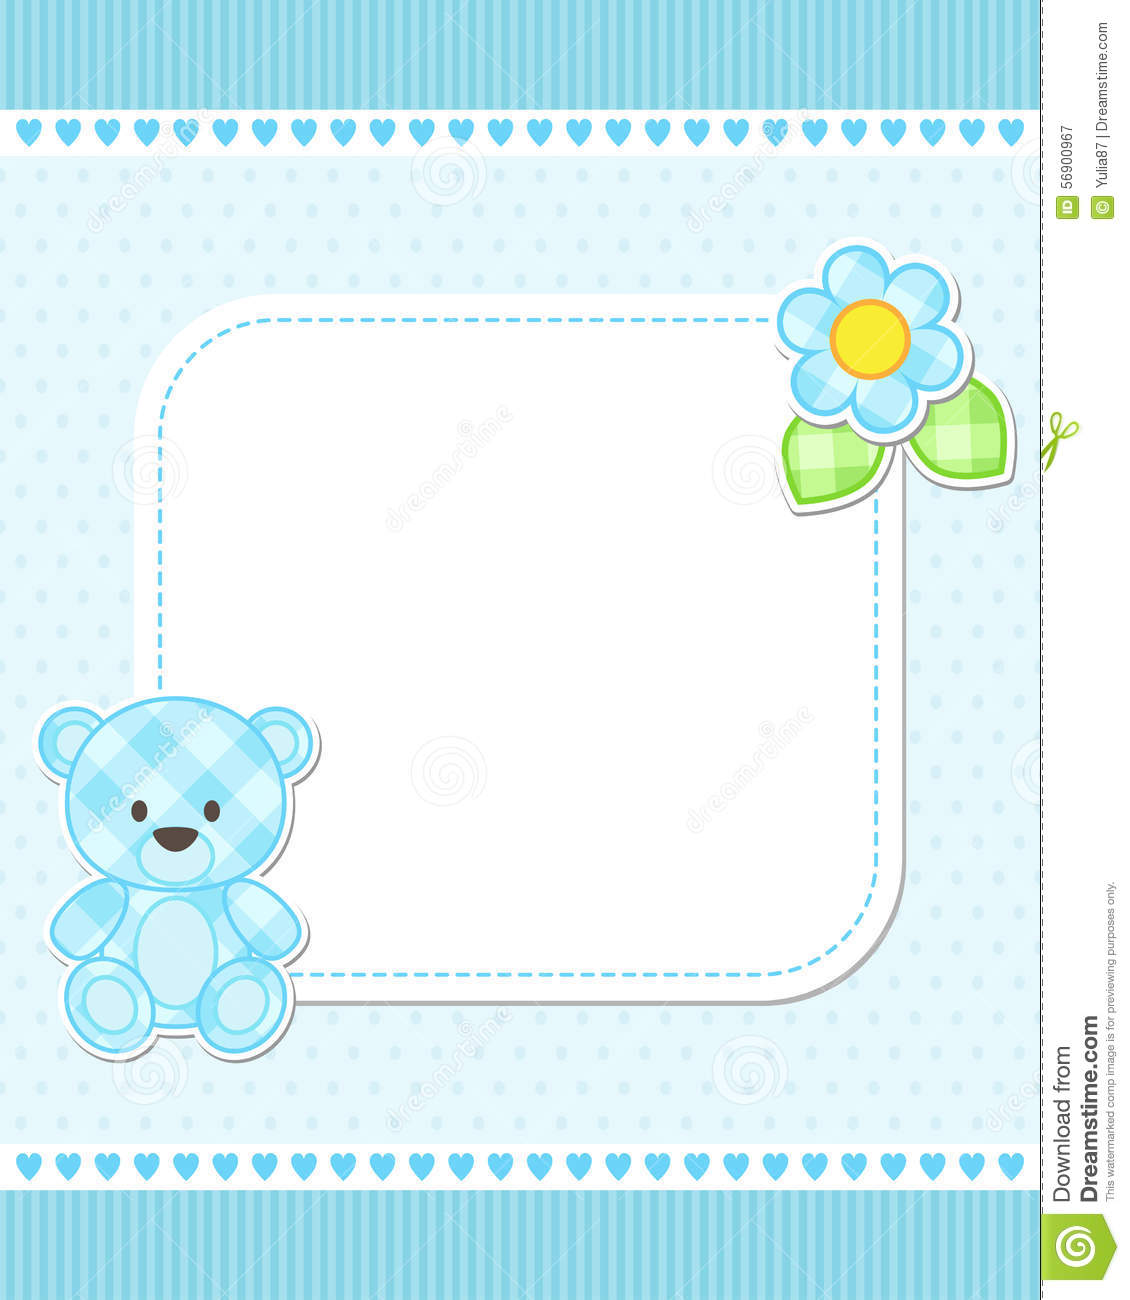 Blue teddy bear card stock vector Image of invitation 56900967 – Baby Boy Birth Announcements Templates